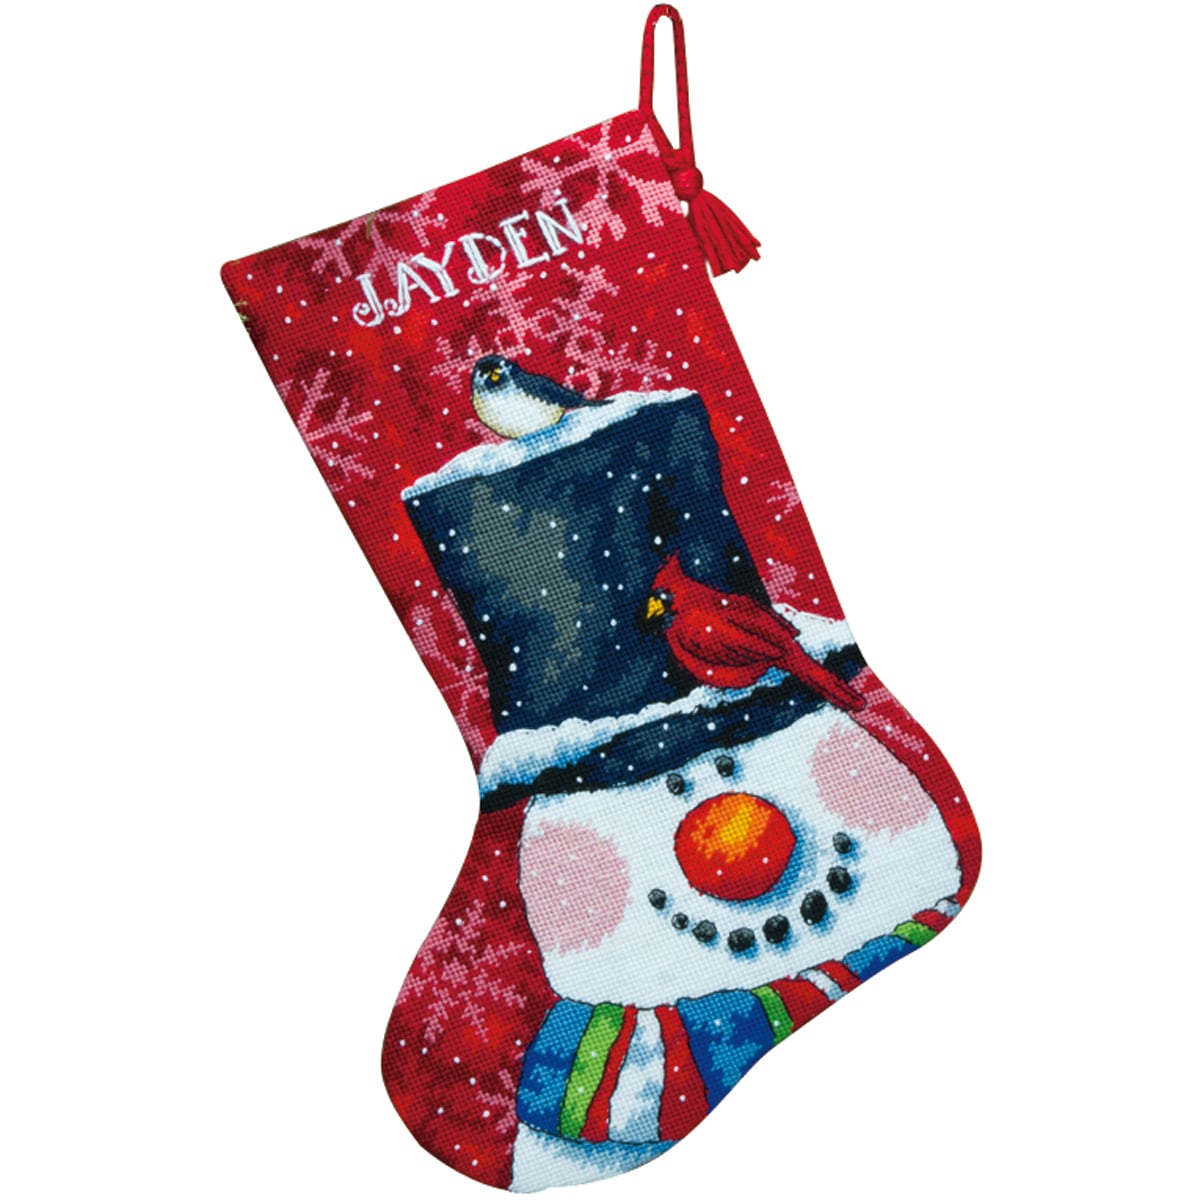 DIMENSIONS Snowman And Friends Stocking Needlepoint Kit-1...